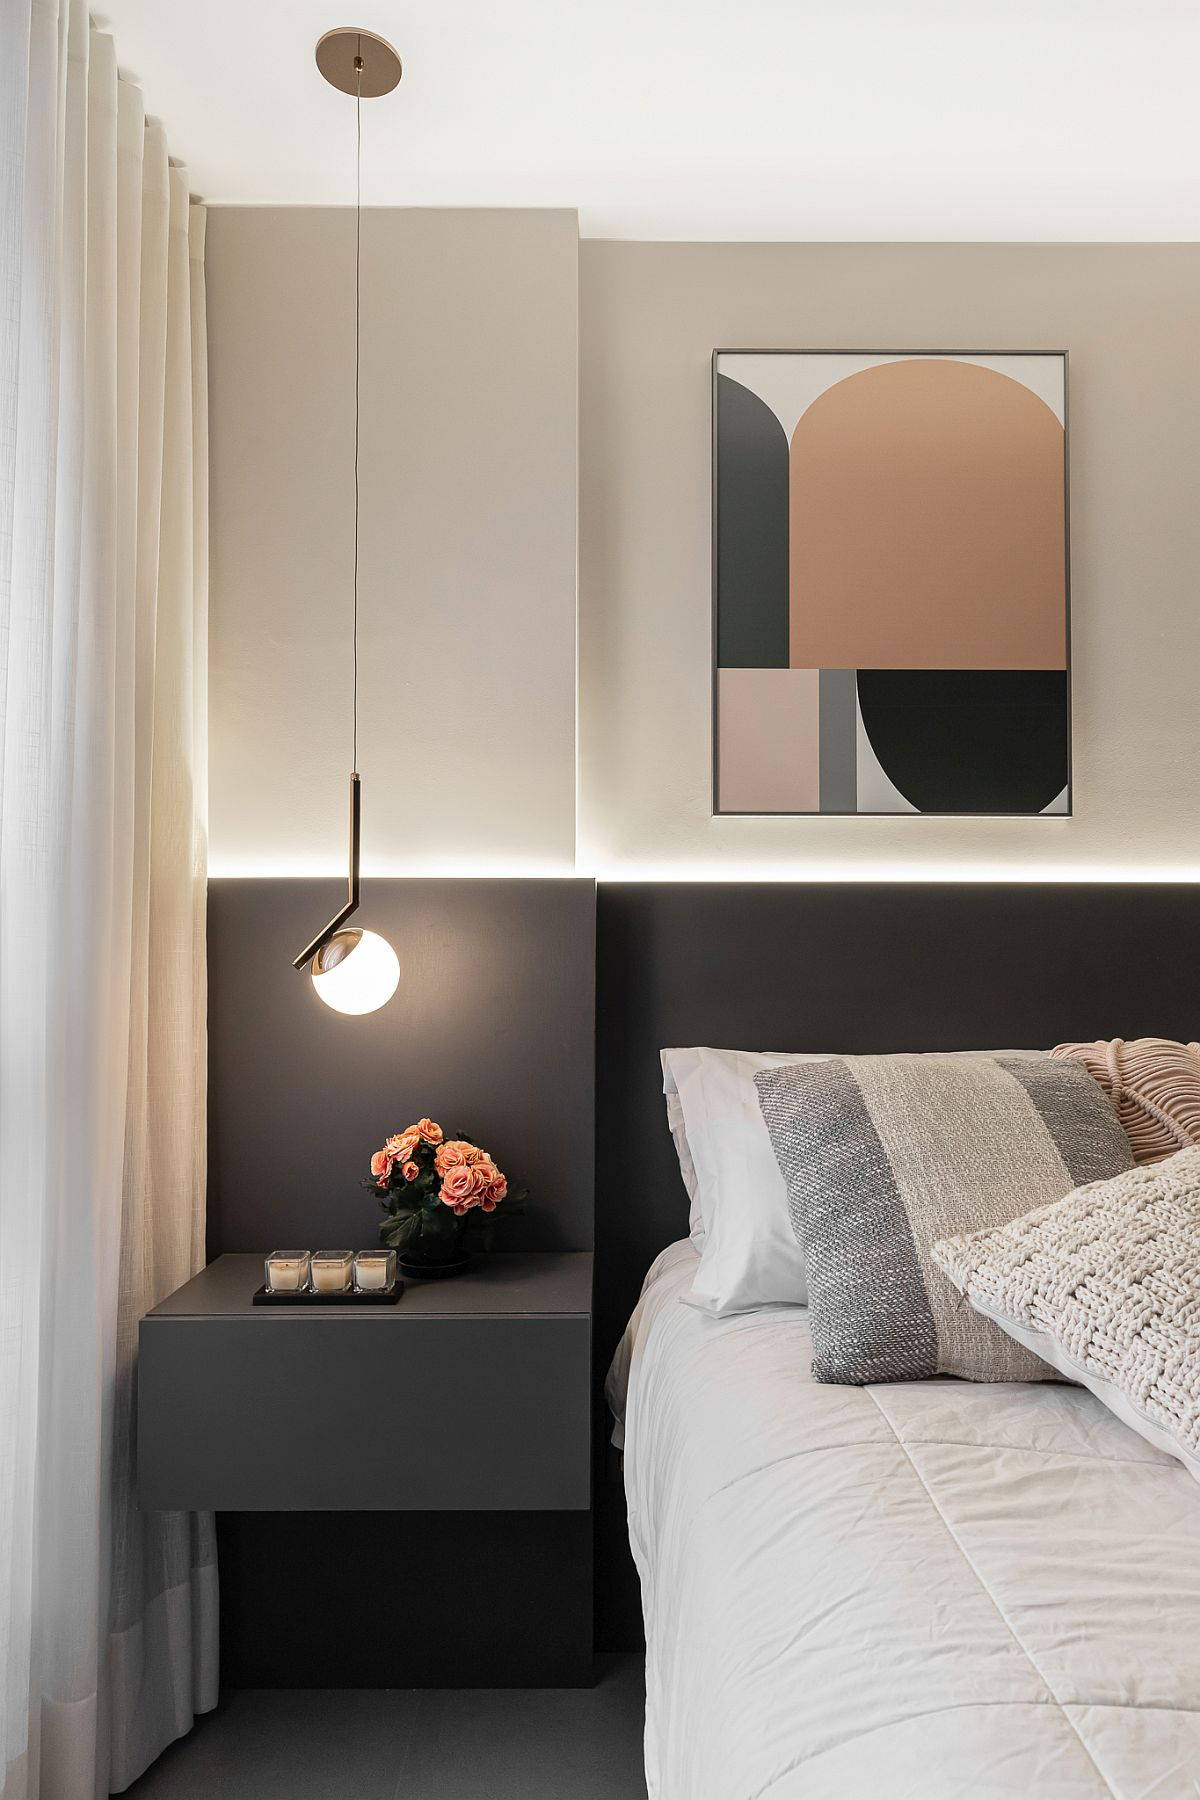 Contemporary bedside pendant light is perfect for the small nightstand